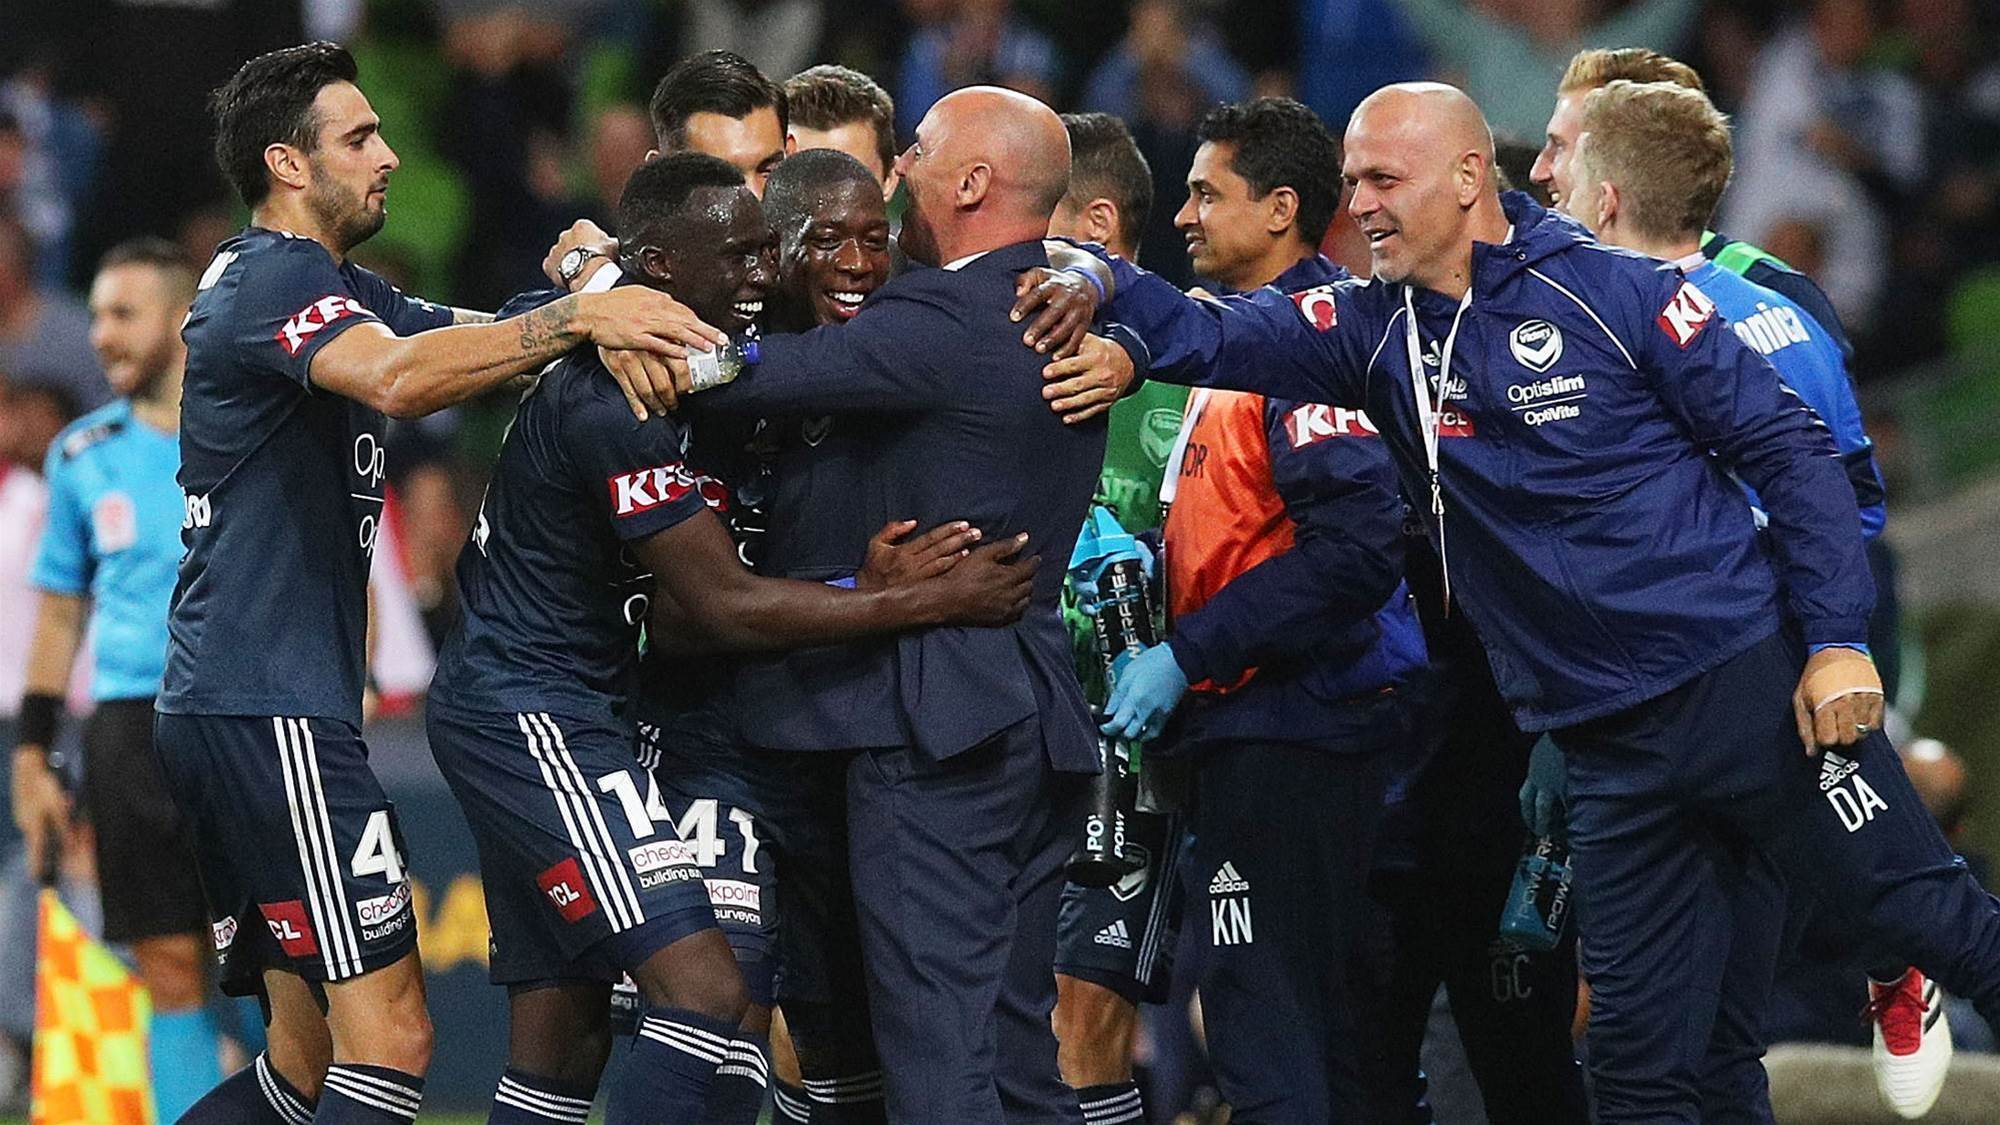 Melbourne Victory hug it out in pressure-breaking win